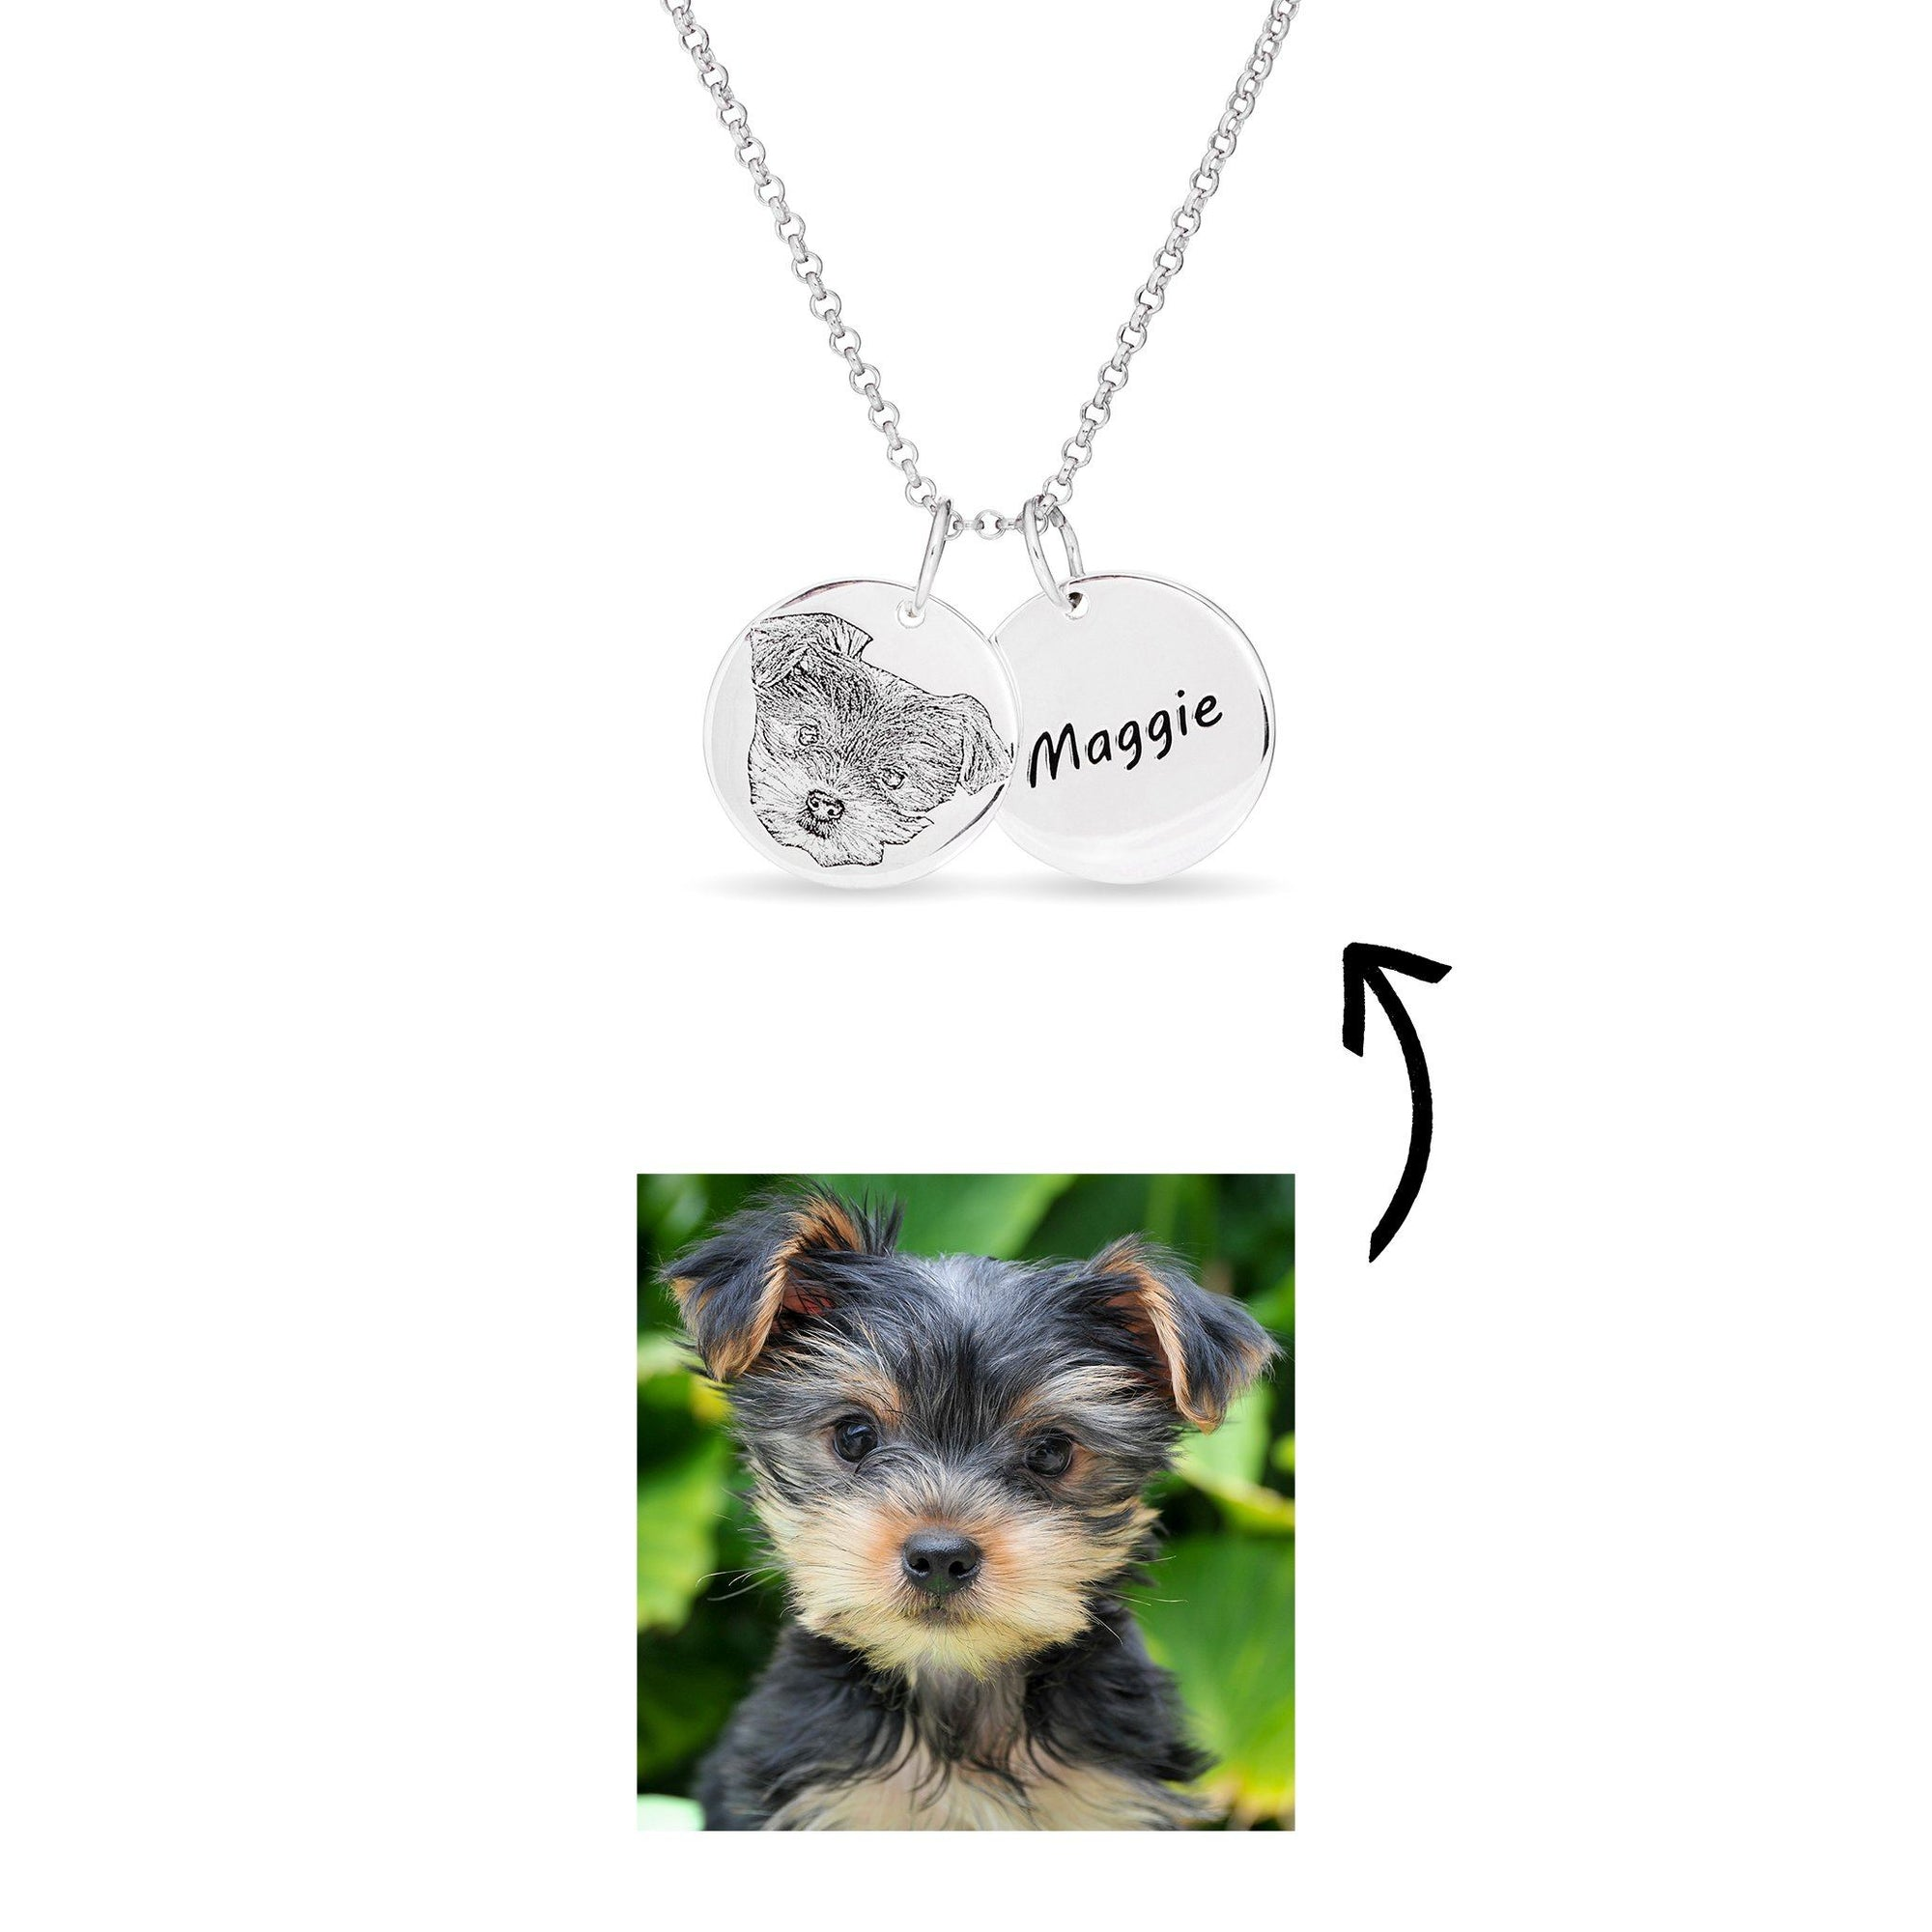 Necklace - Personalised Pet Double Disc Necklace